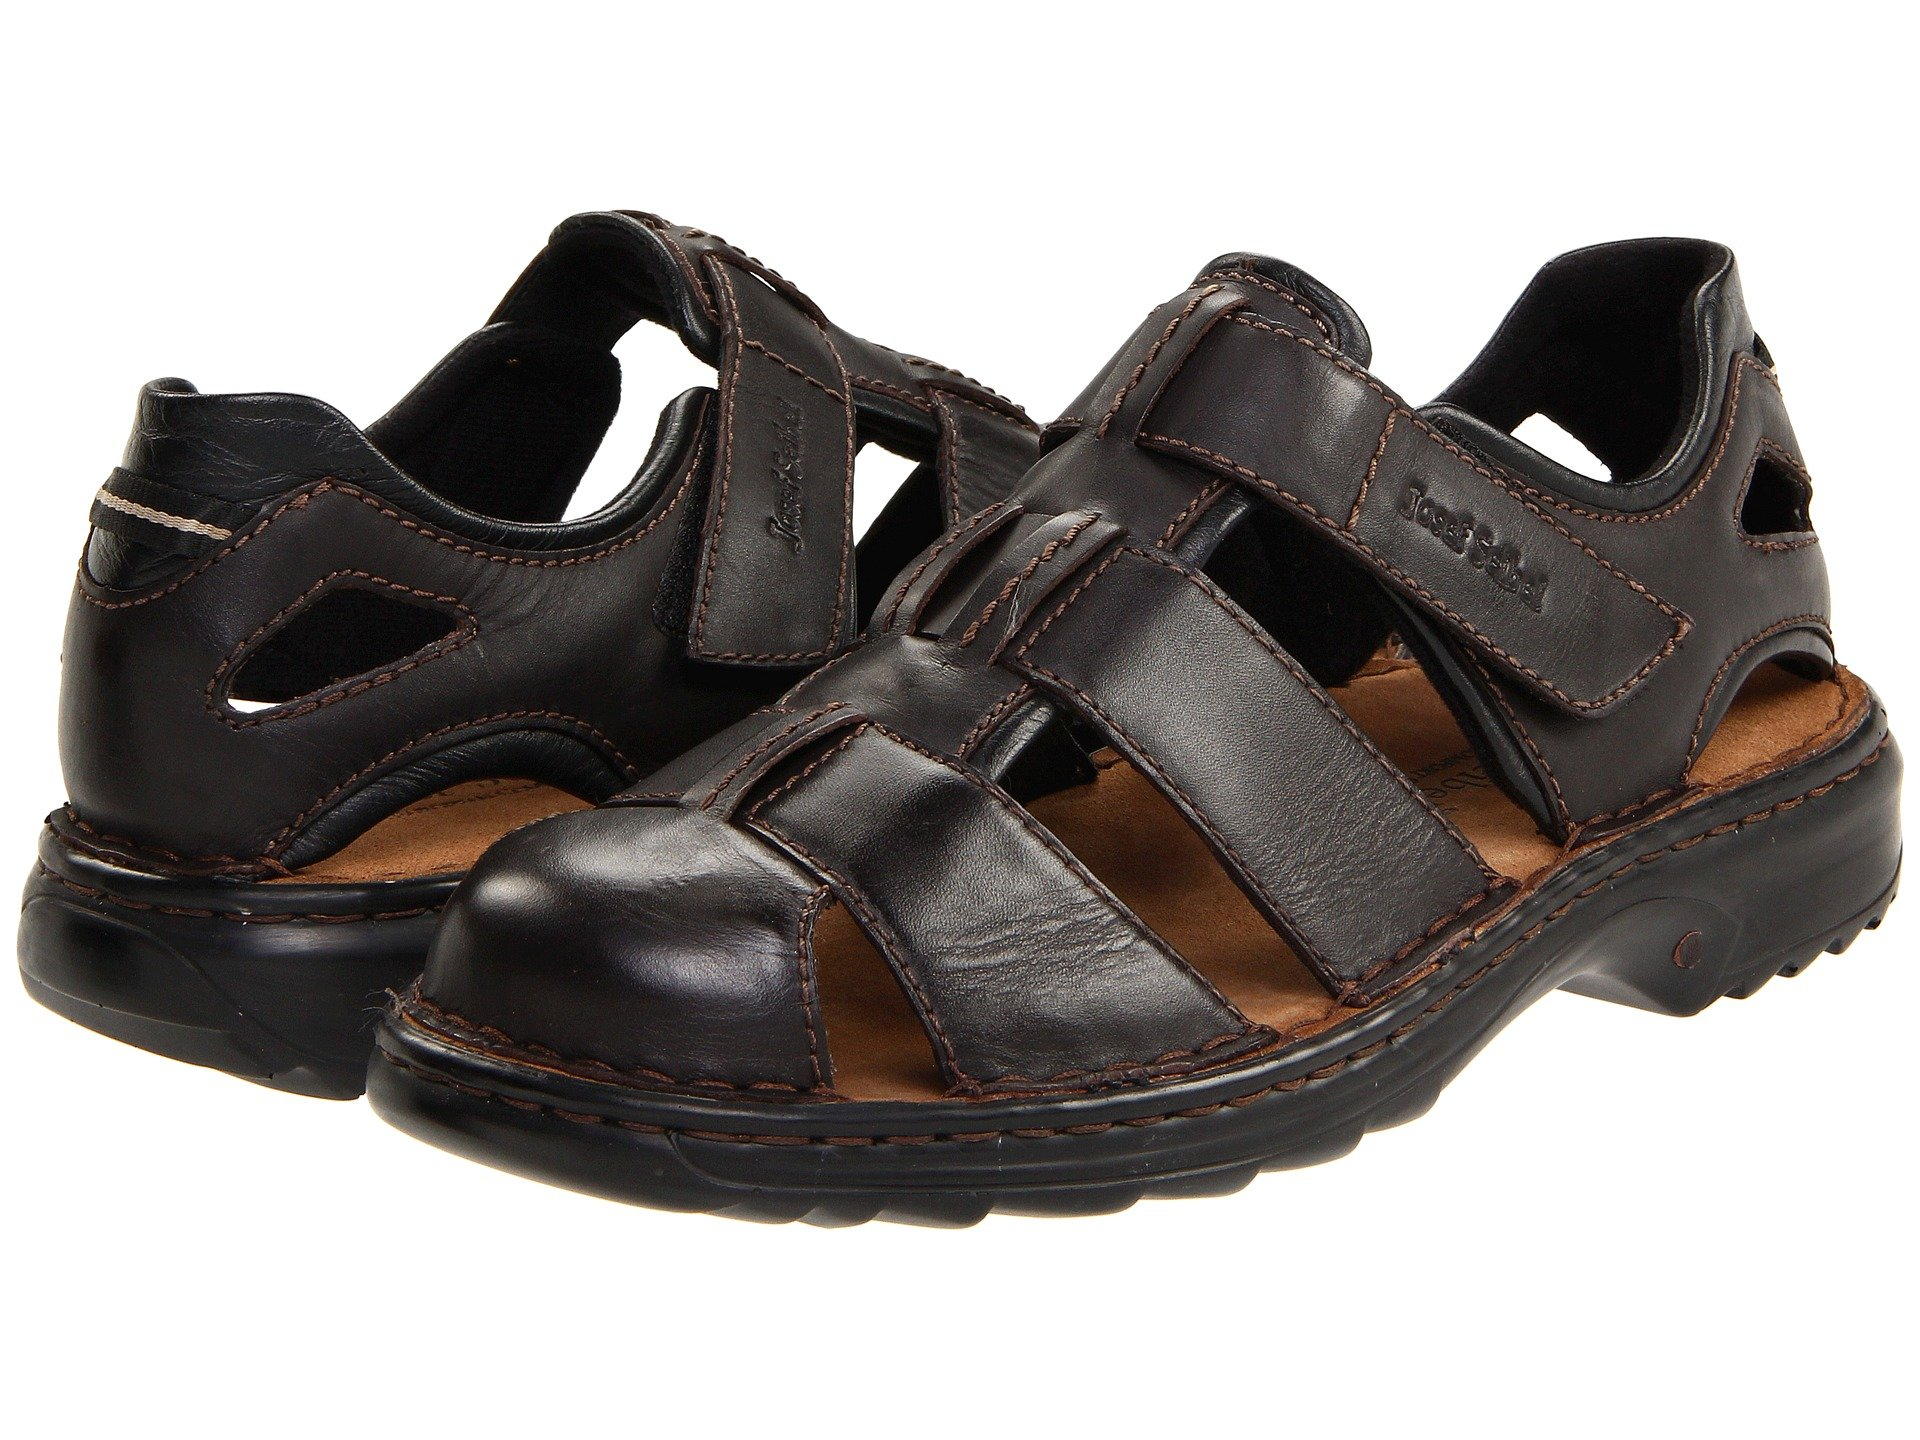 d0d6168bb Men s Josef Seibel Sandals + FREE SHIPPING